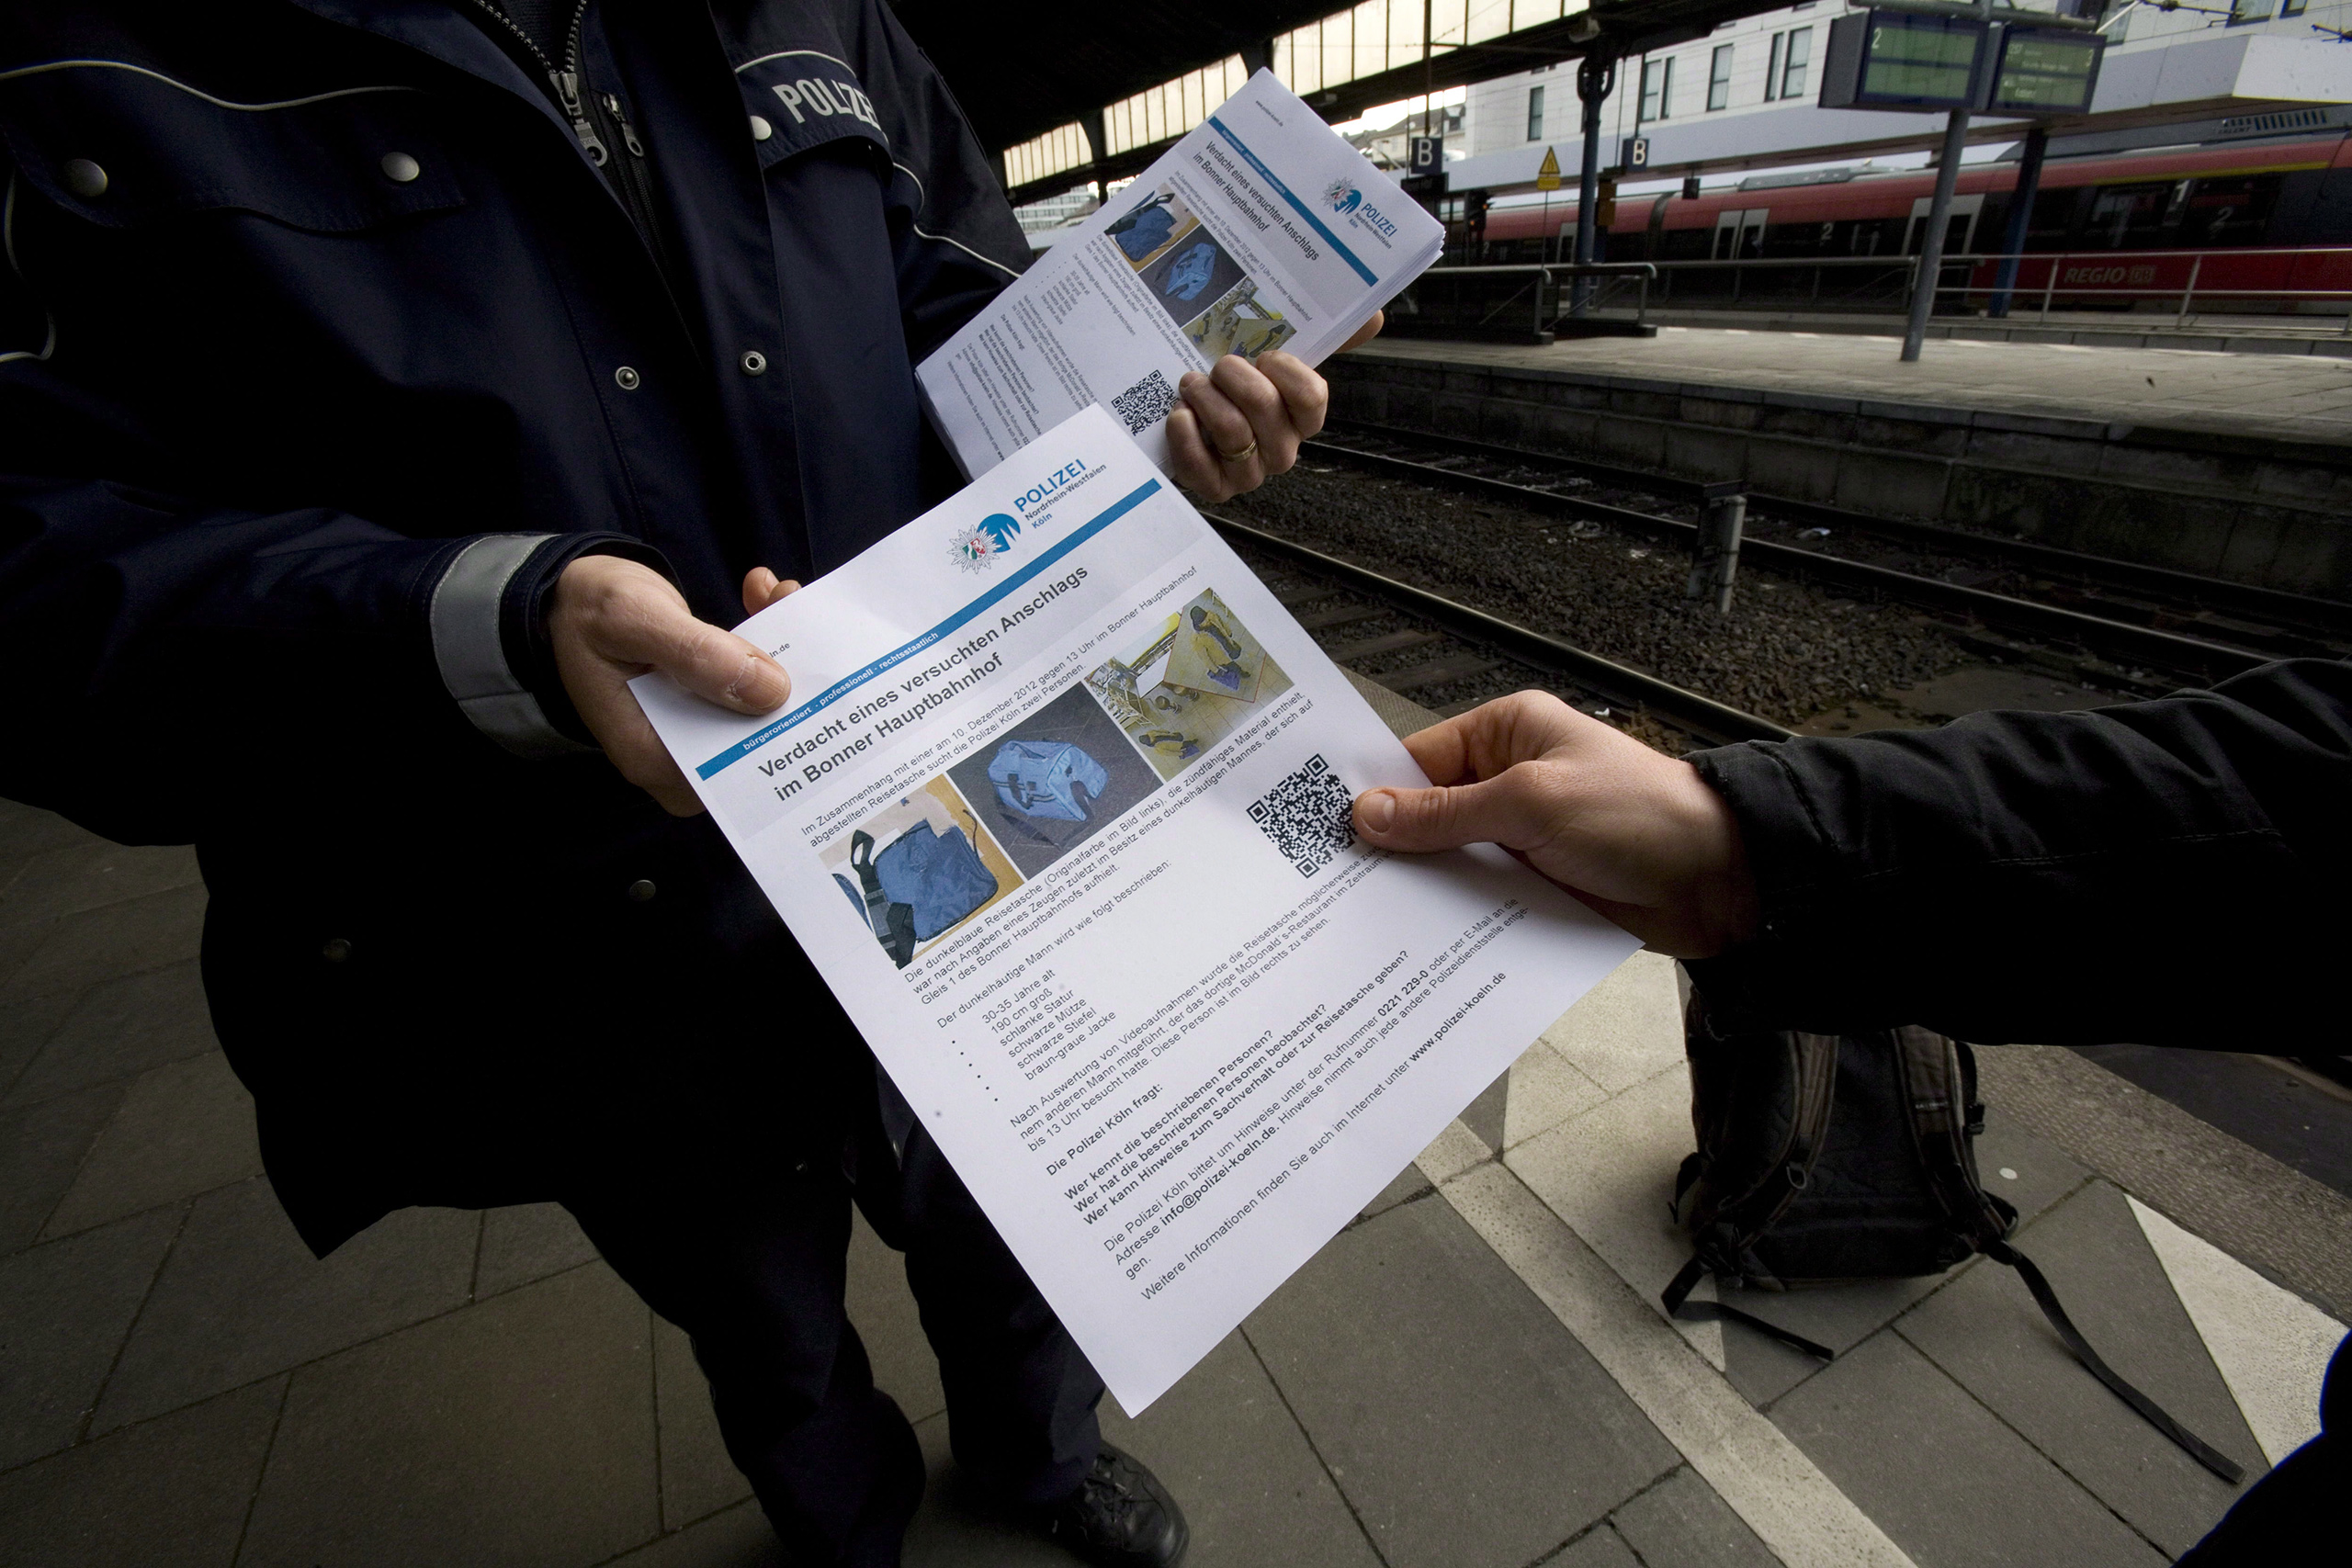 A poster released by the police shows the suspect of an attempted bomb attack at the central train station in Bonn, Germany, Dec. 13, 2012.